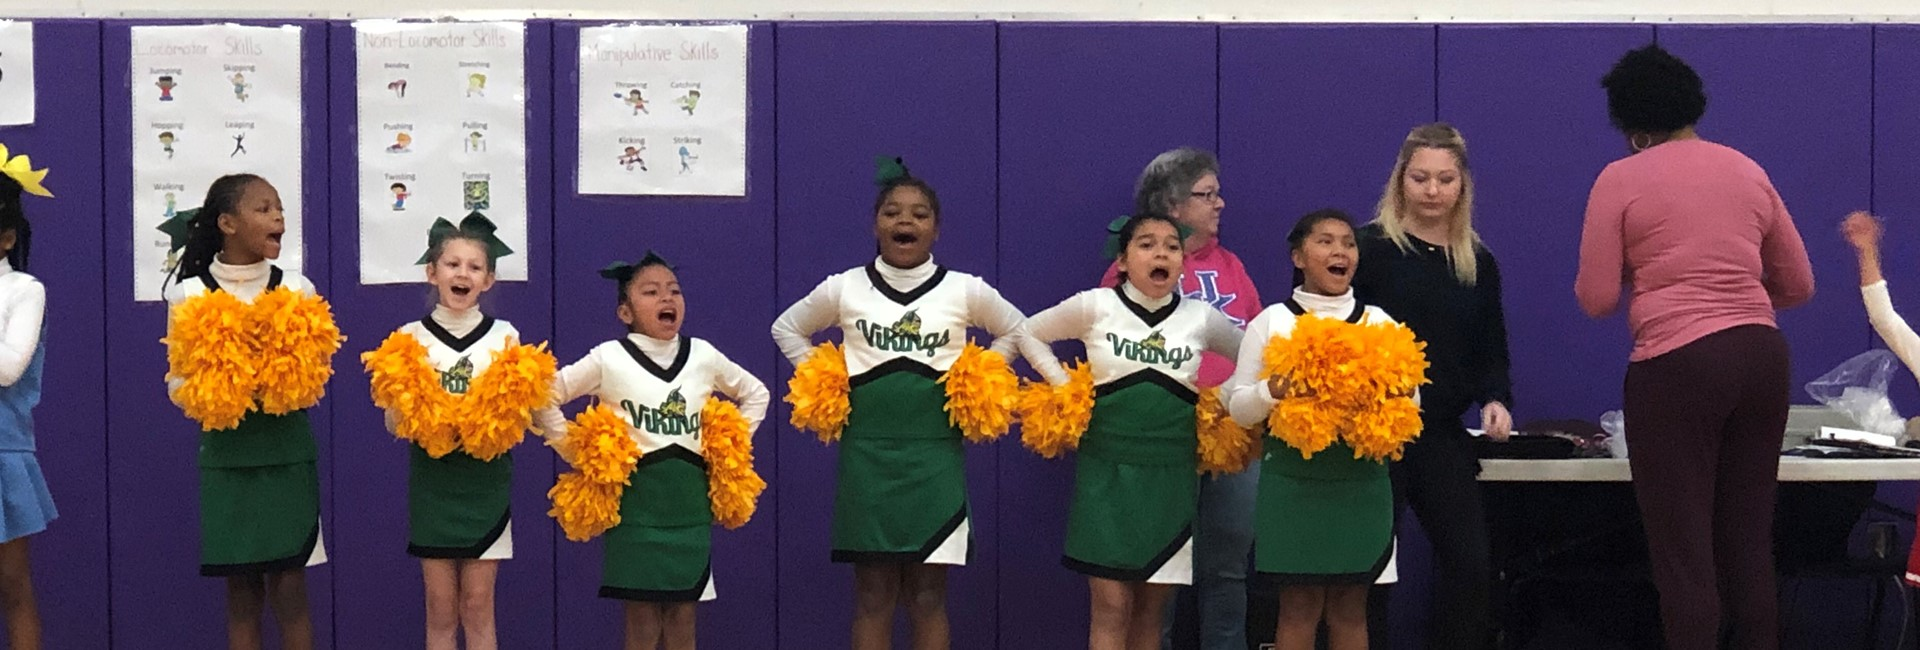 Ninth District Cheerleaders competing at the District Cheer Competition.